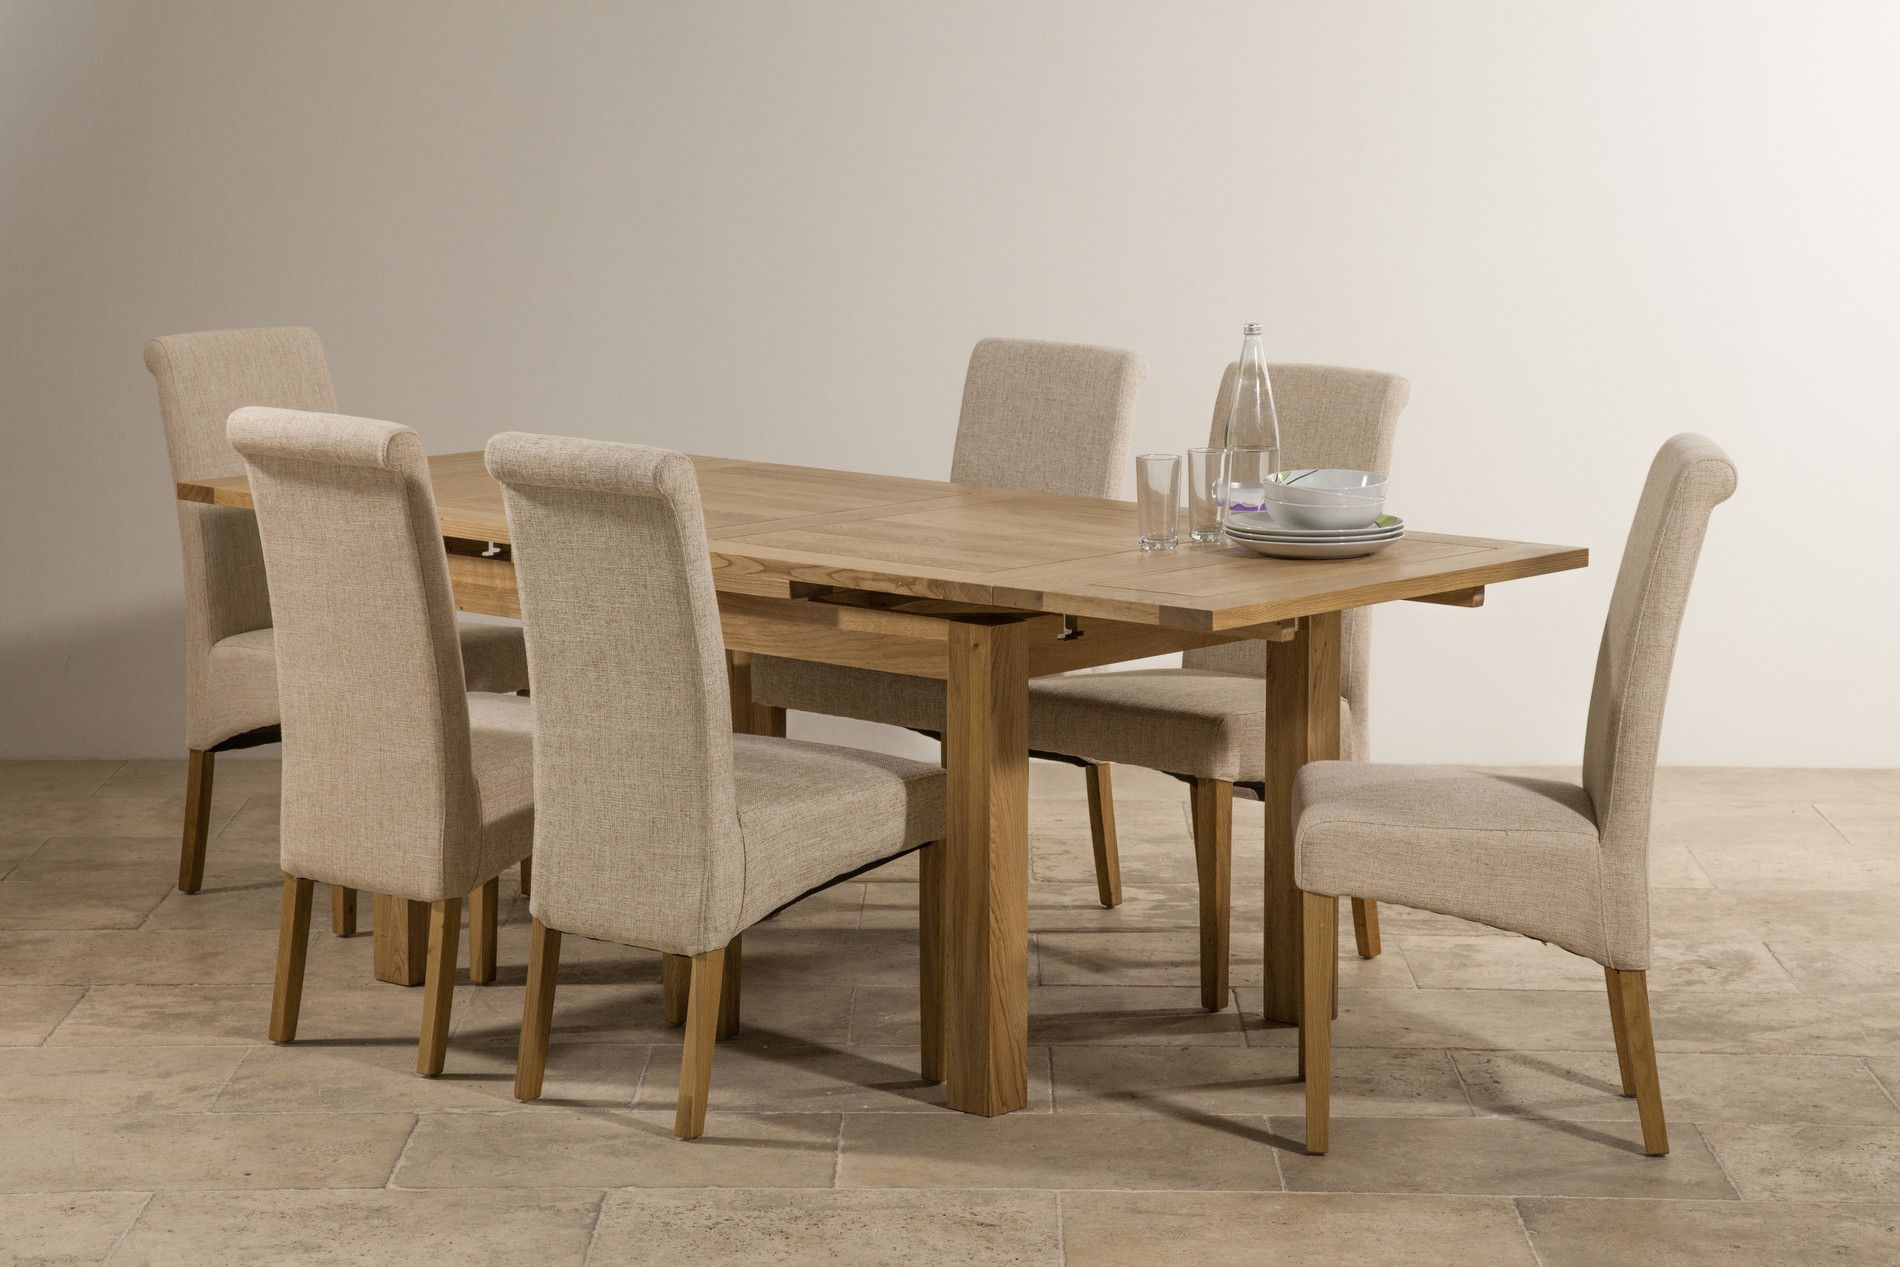 Dorset X Solid Oak Extending Dining Table 6 Beige Fabric Scroll Back Chairs By Furniture Land